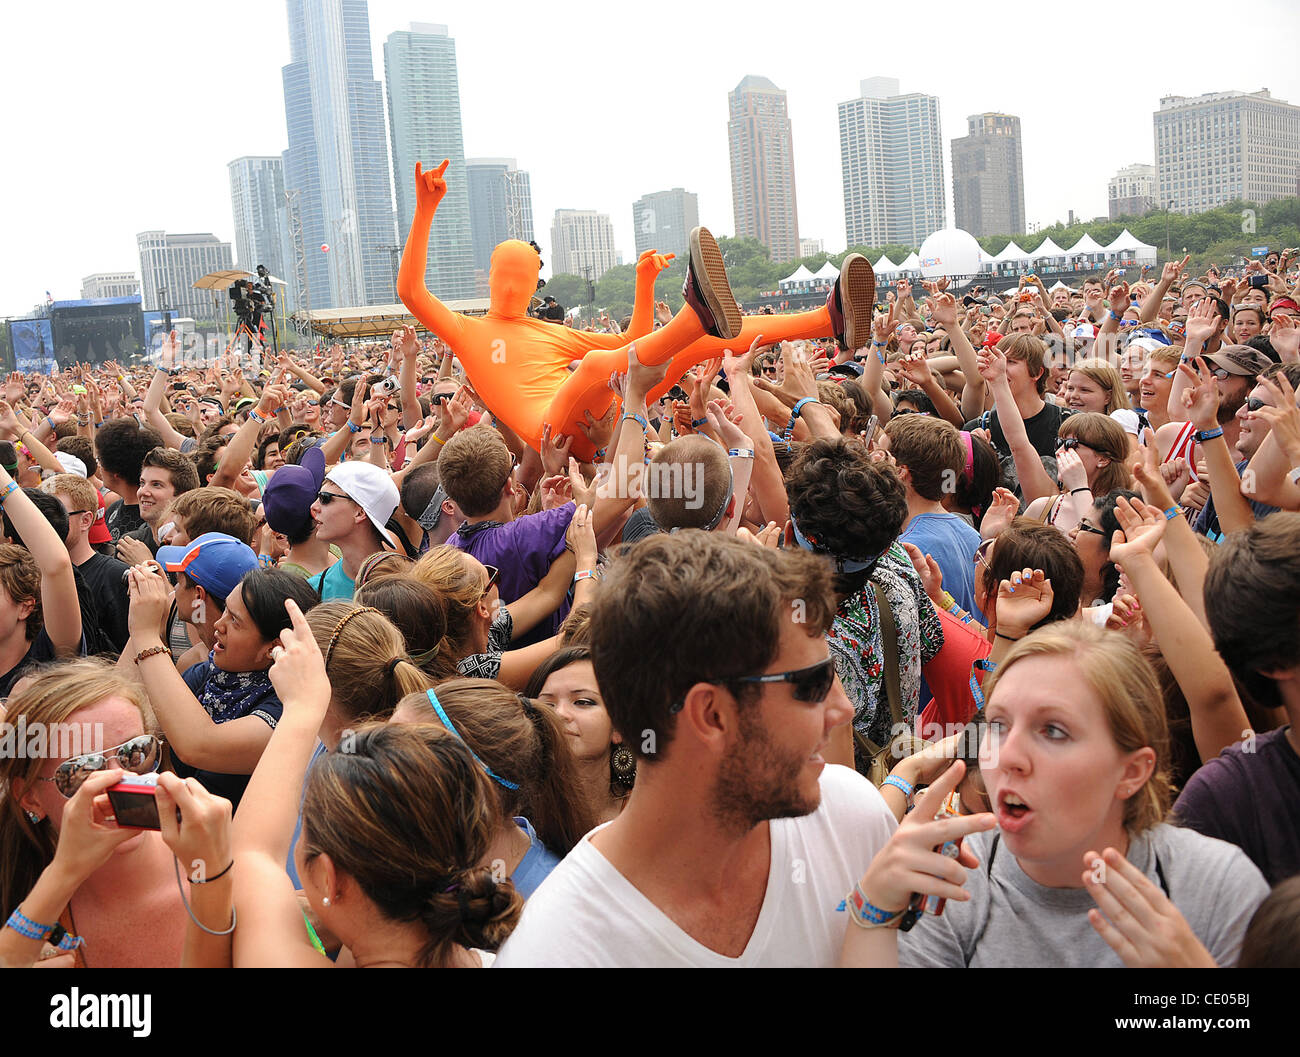 Aug 5, 2011 - Chicago, Illinois; USA - General Atmosphere as part of the 20th Anniversary of the Lollapalooza Music - Stock Image